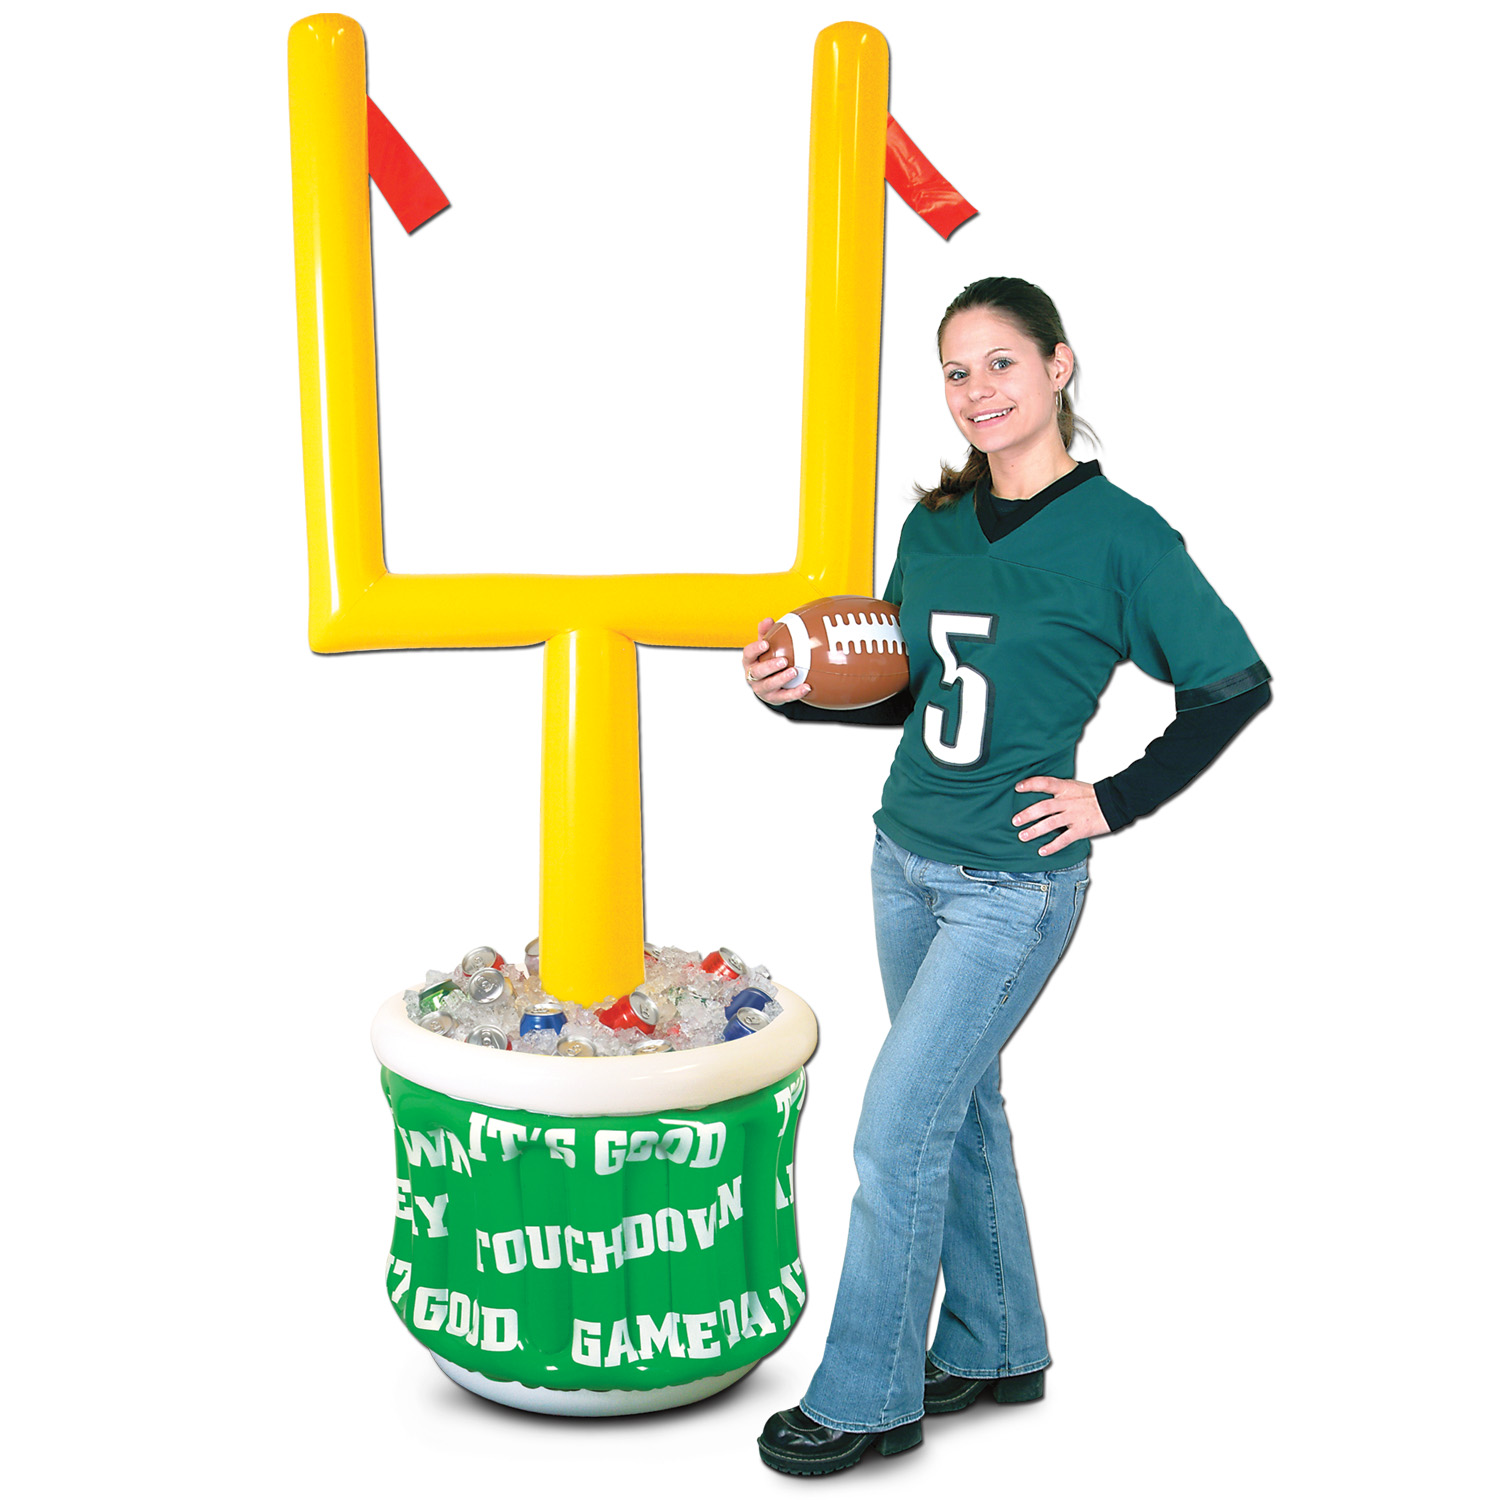 Inflatable Goal Post Cooler with Football (Pack of 1) Inflatable Cooler, Inflatable Goal Post, Goal Post, Game Day Decor, Wholesale party supplies, Inexpensive party supplies, Cheap football decor, Party cooler, Game day decor